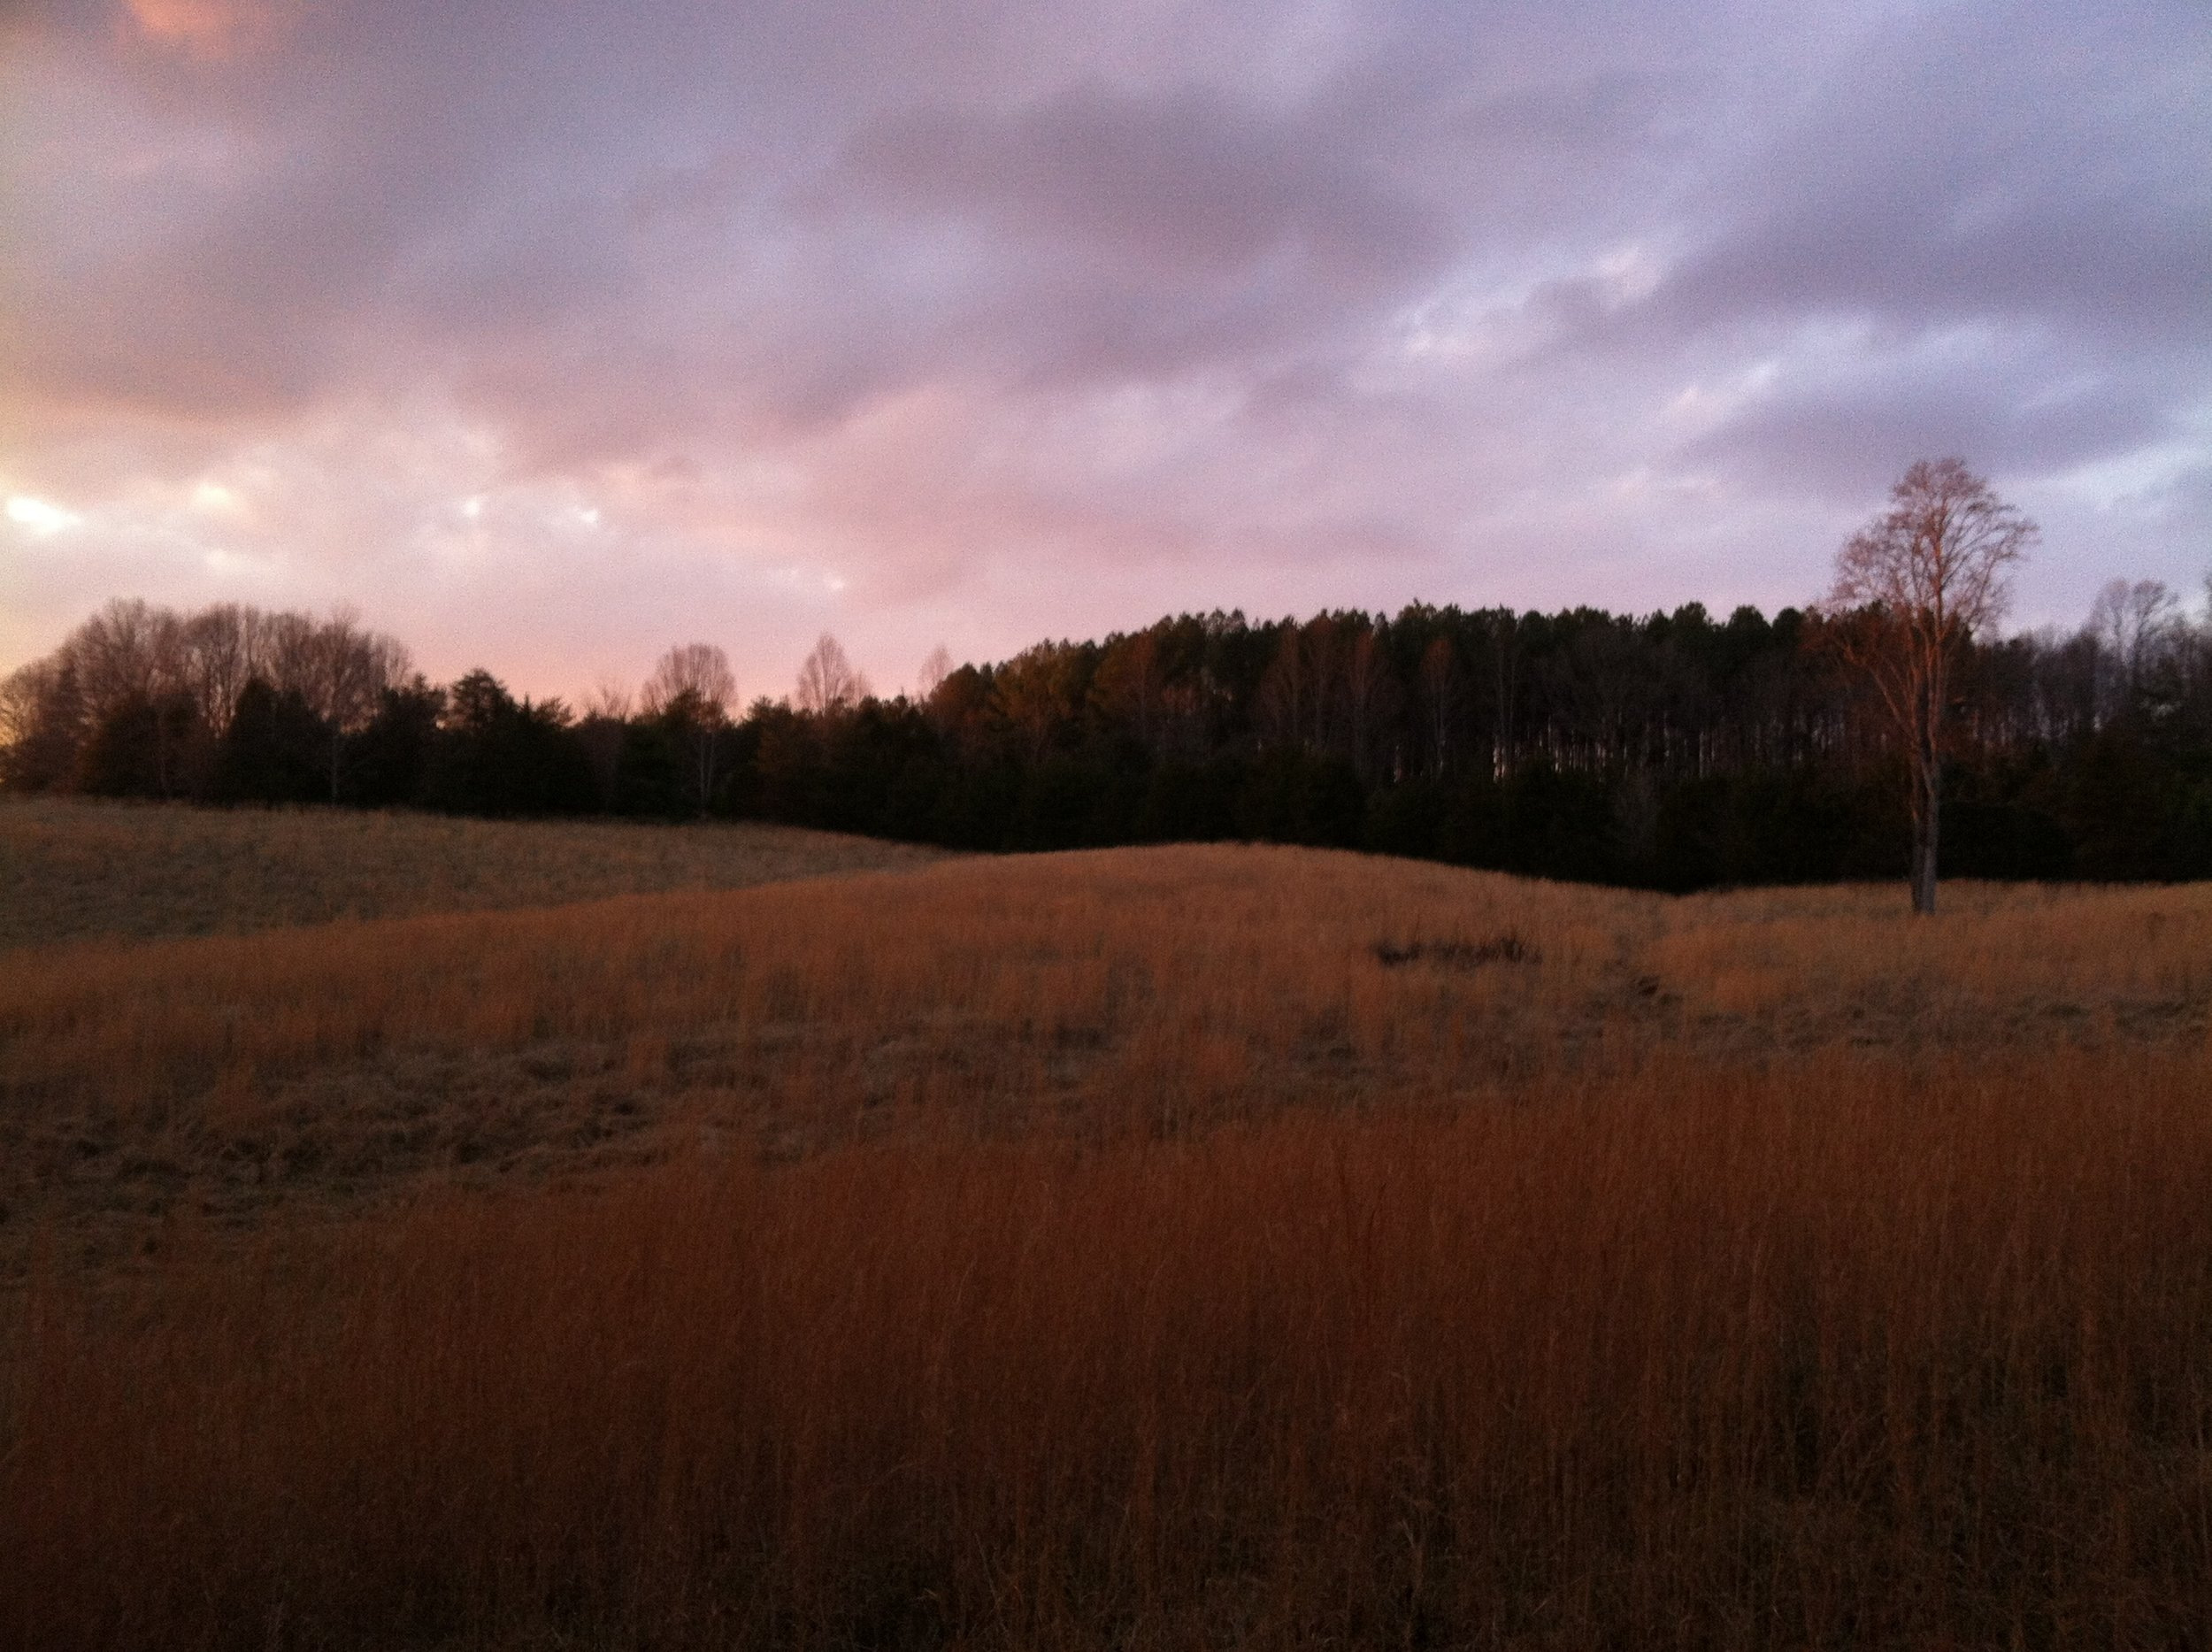 Atelier is 5 acres in a broader 60. Sunset walks around the larger acreage are very nice for farm-plan dreaming.